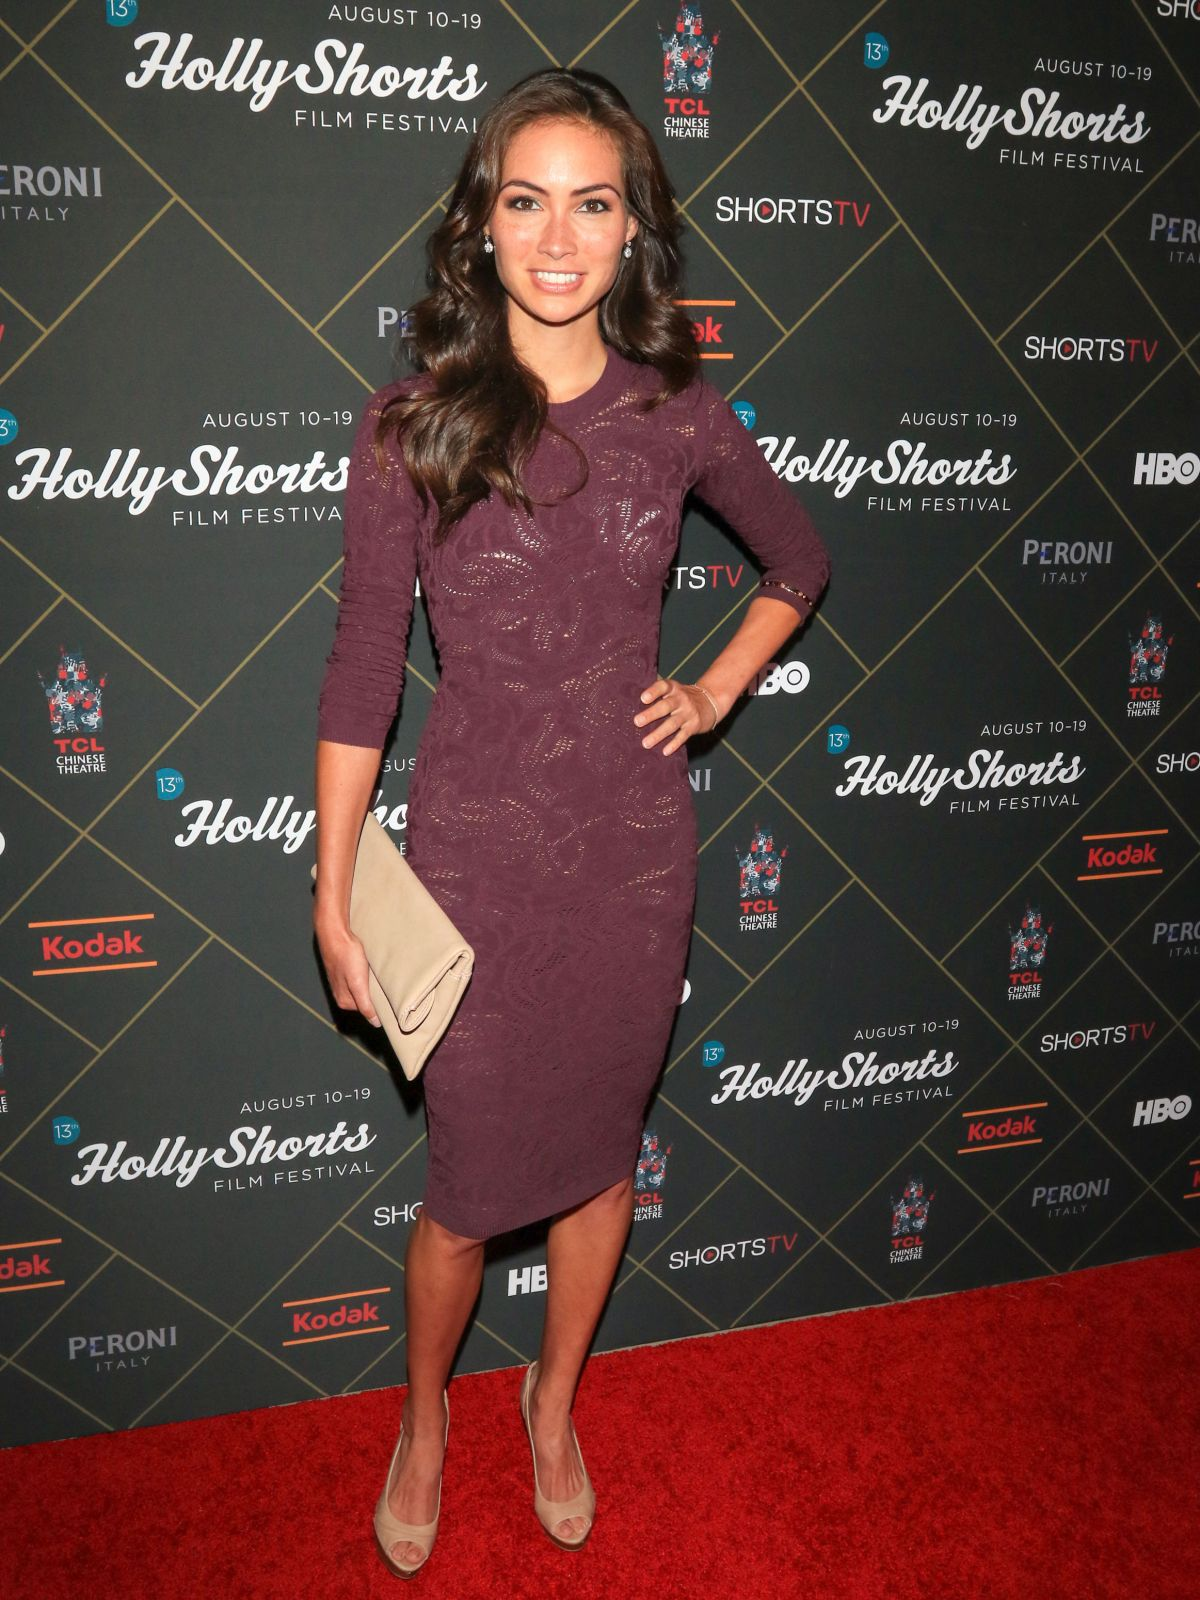 CAITLIN MCHUGH at Hollyshorts Opening Night in Hollywood 08/10/2017